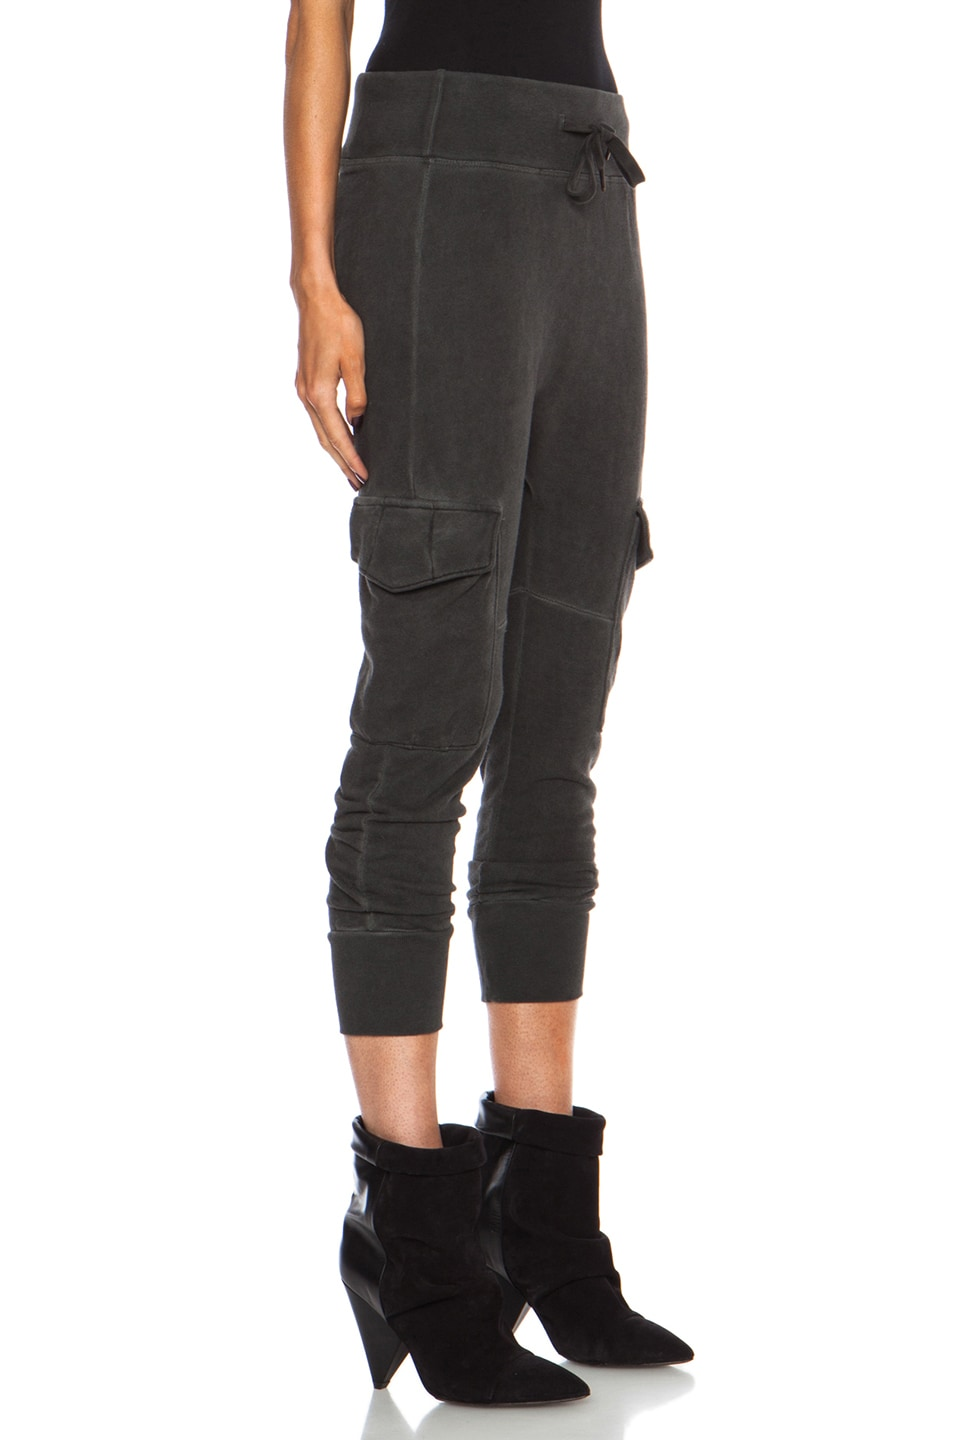 Image 3 of NSF Smith Cotton Sweatpant in Oil Wash Black